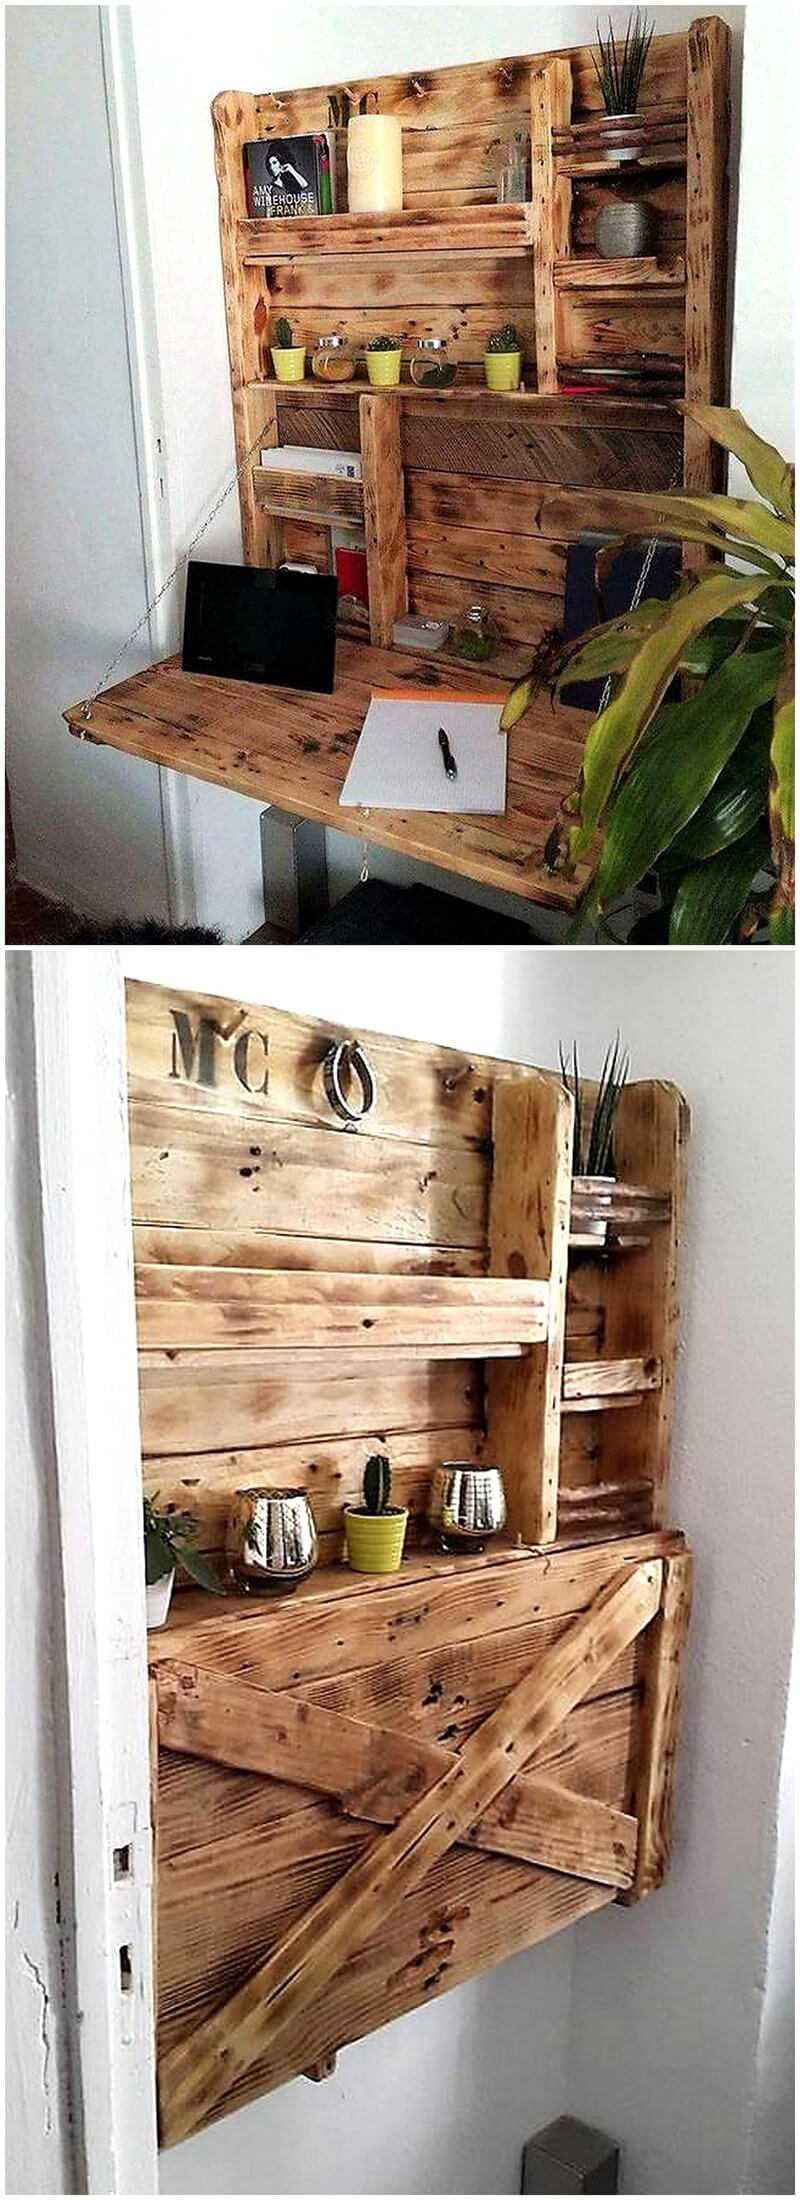 30+ Creative Ways Pallet Recycling Ideas and Designs